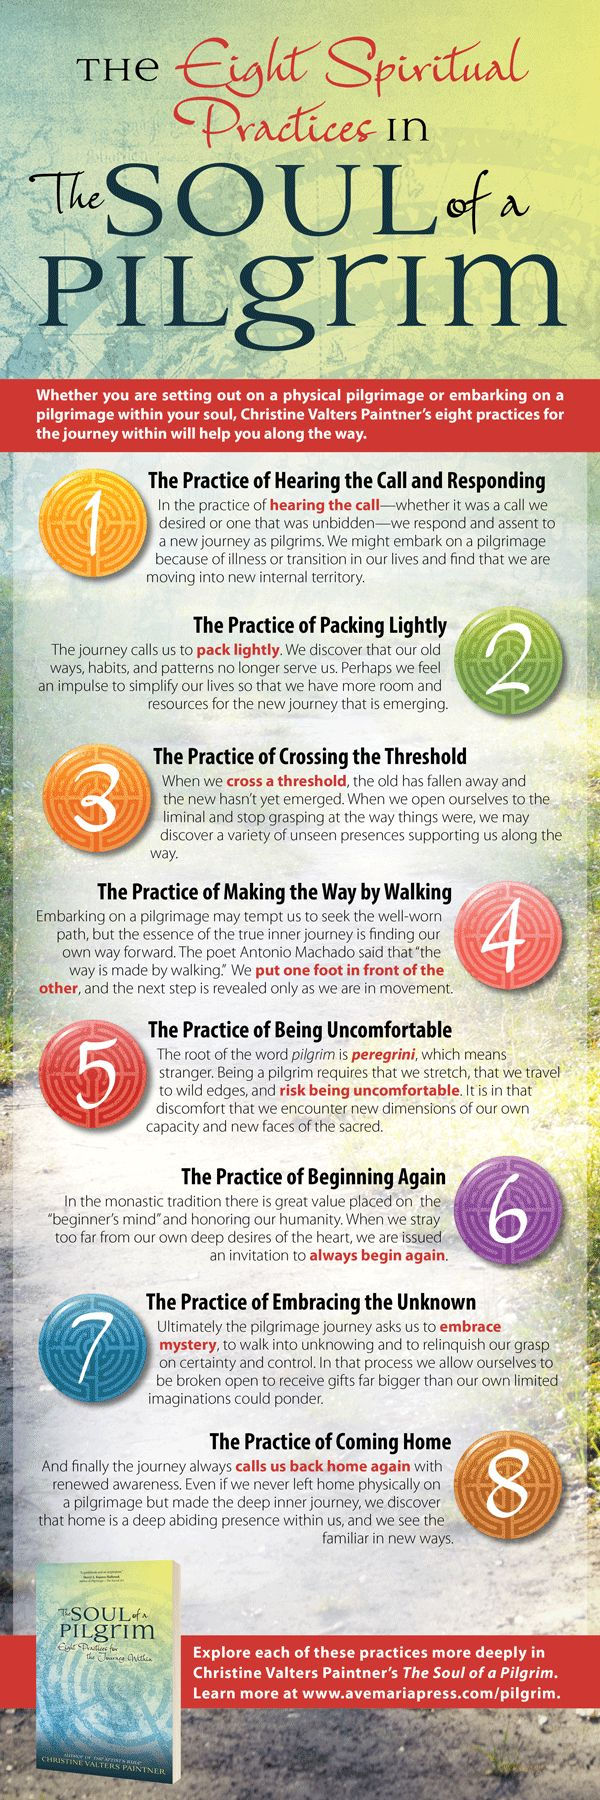 88 best camino de santiago images on pinterest hiking hiking tips the soul of a pilgrim infographic ave maria press fandeluxe Image collections